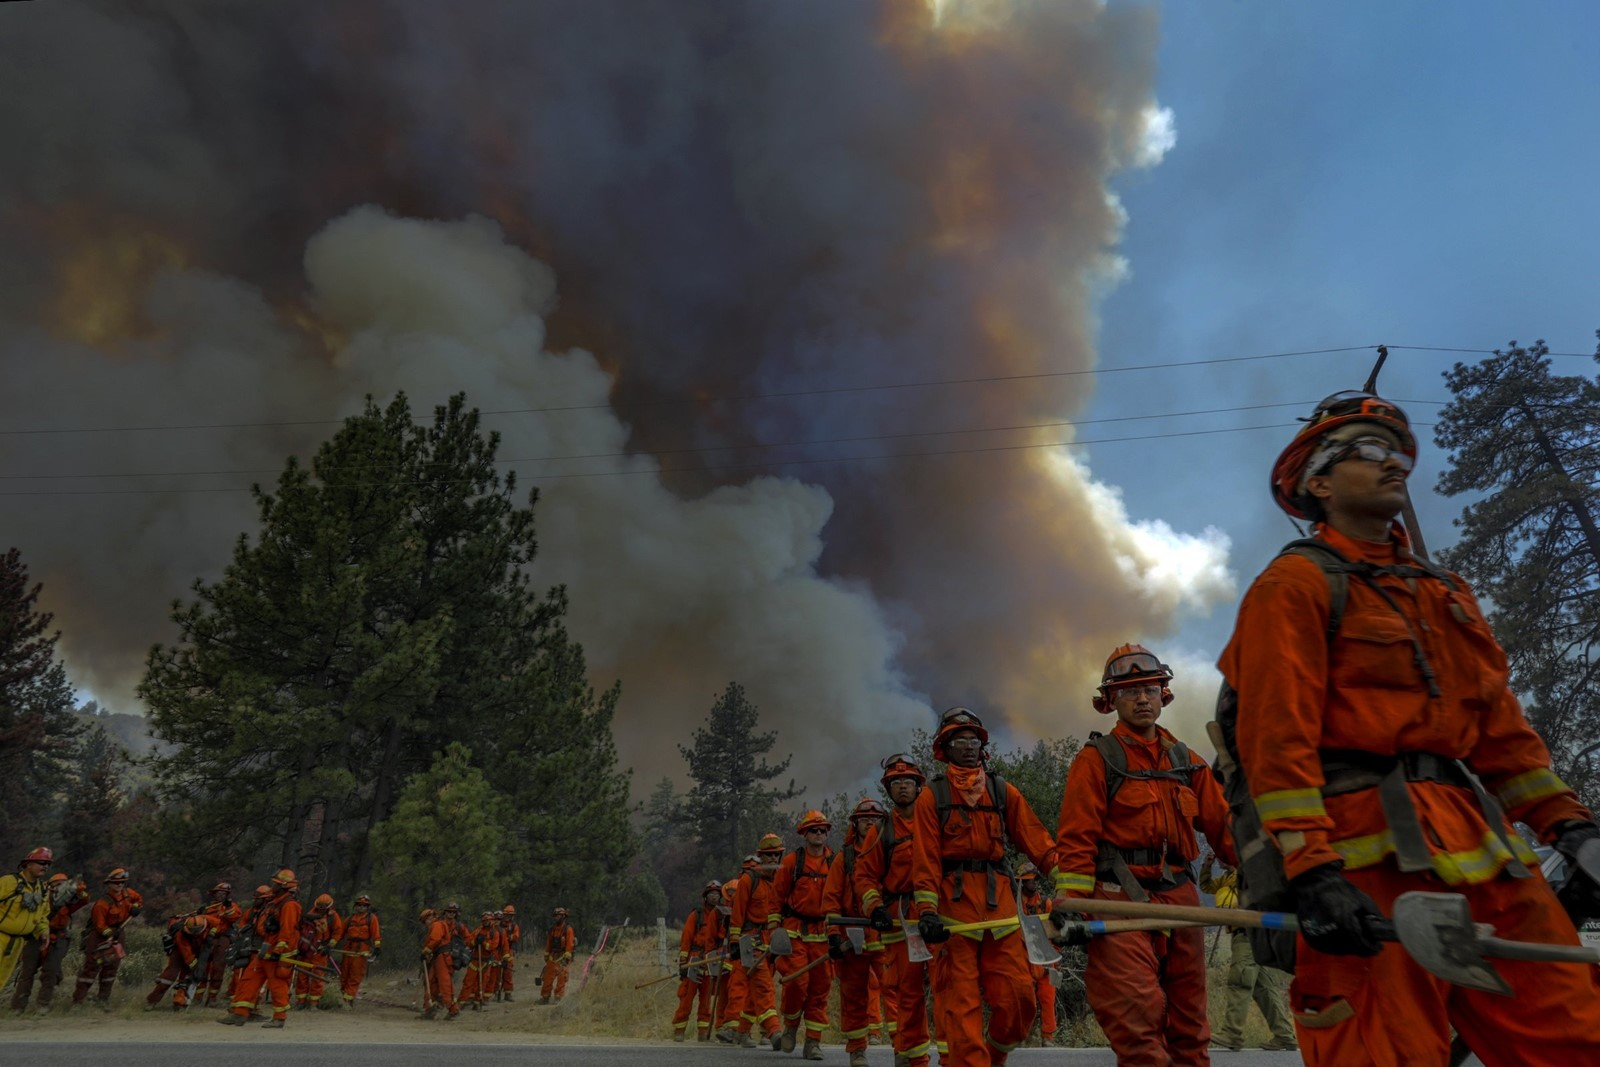 Members of a hand crew fight the Cranston fire raging in Mountain Center. As of Thursday afternoon, the blaze had charred 7,500 acres and was 5% contained. — Photograph: Irfan Khan/Los Angeles Times.